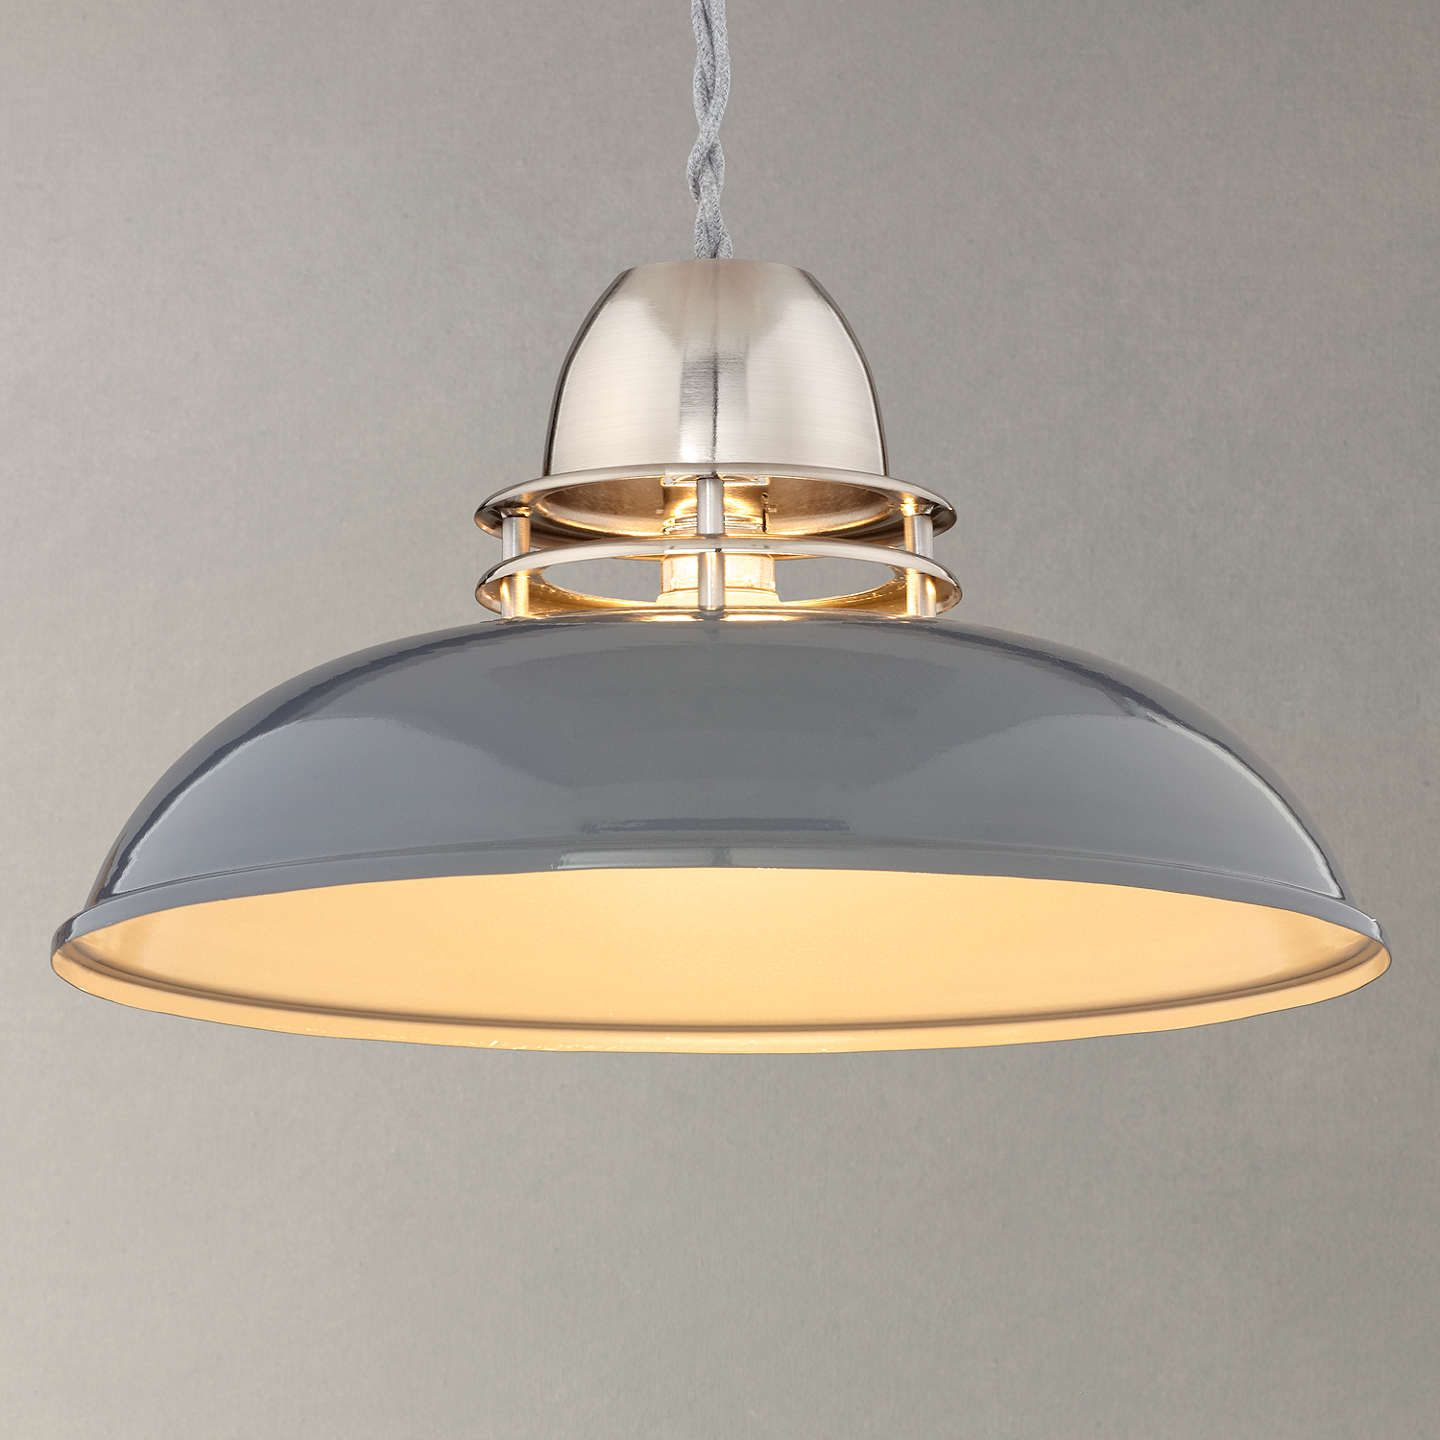 John Lewis & Partners Carmine Easy-to-Fit Ceiling Shade